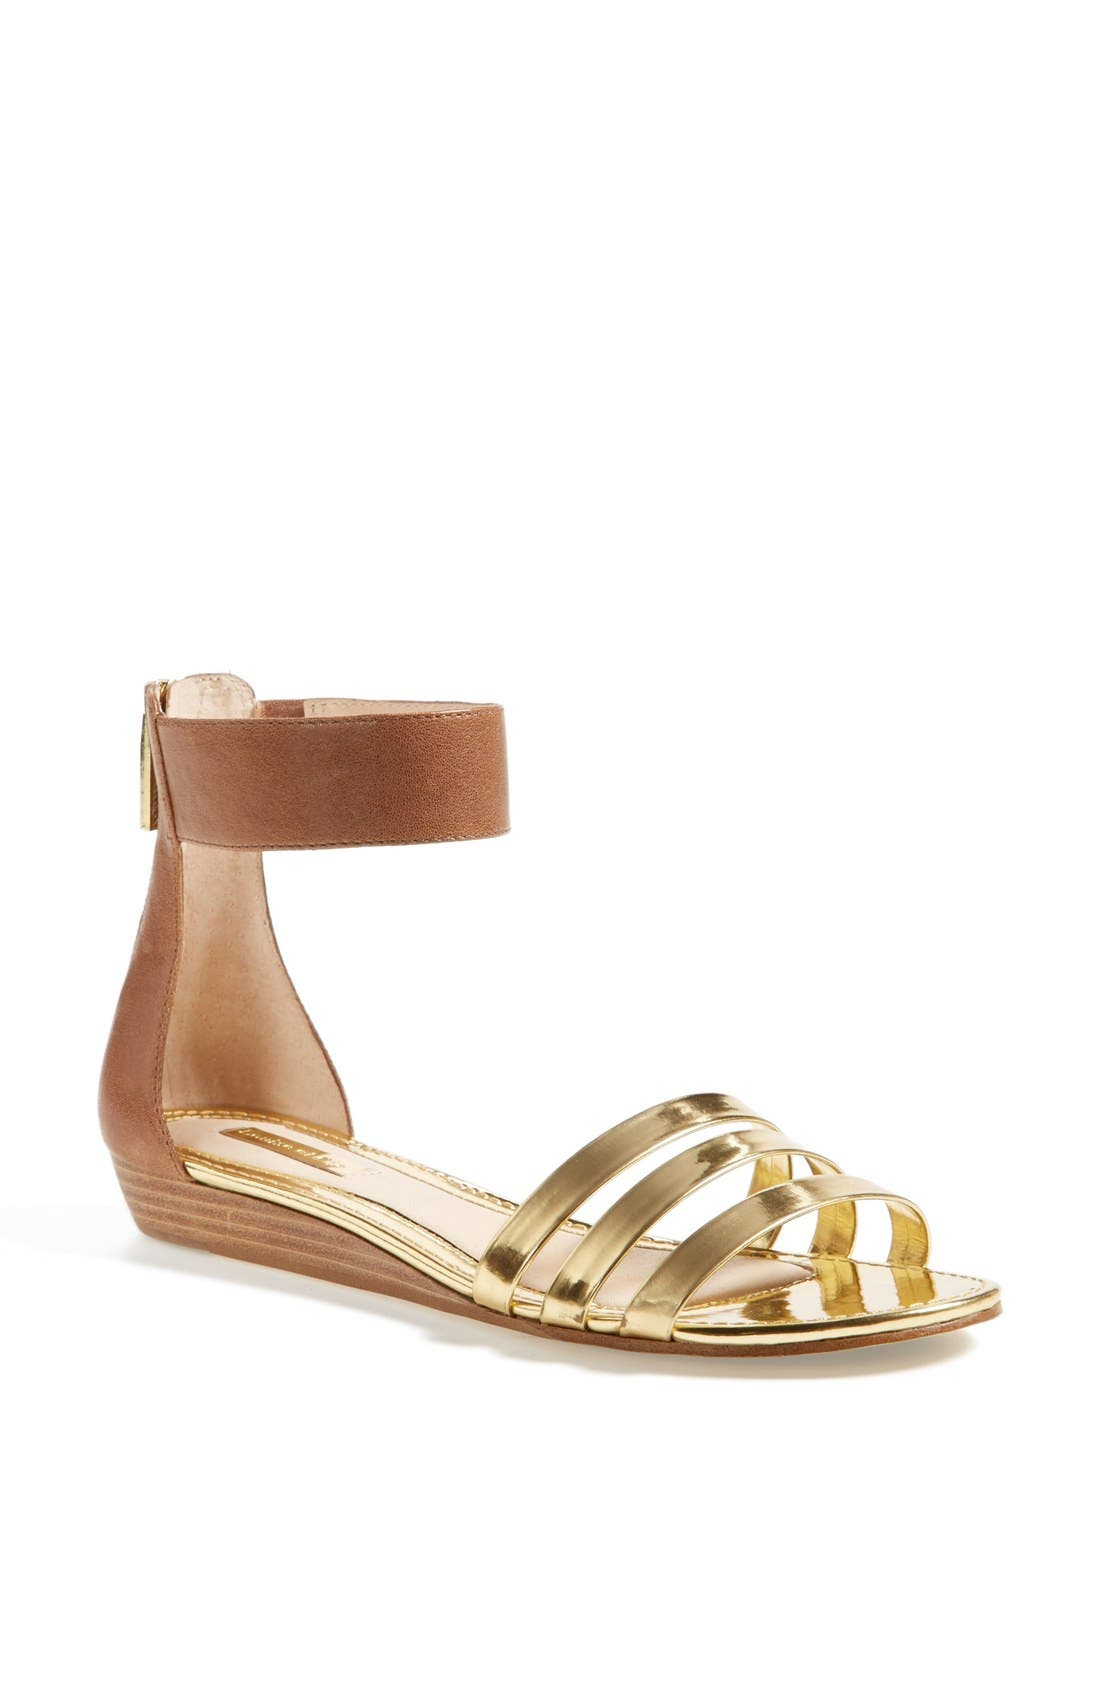 Alternate Image 1 Selected - LOUISE ET CIE OROYO WEDGE SANDAL